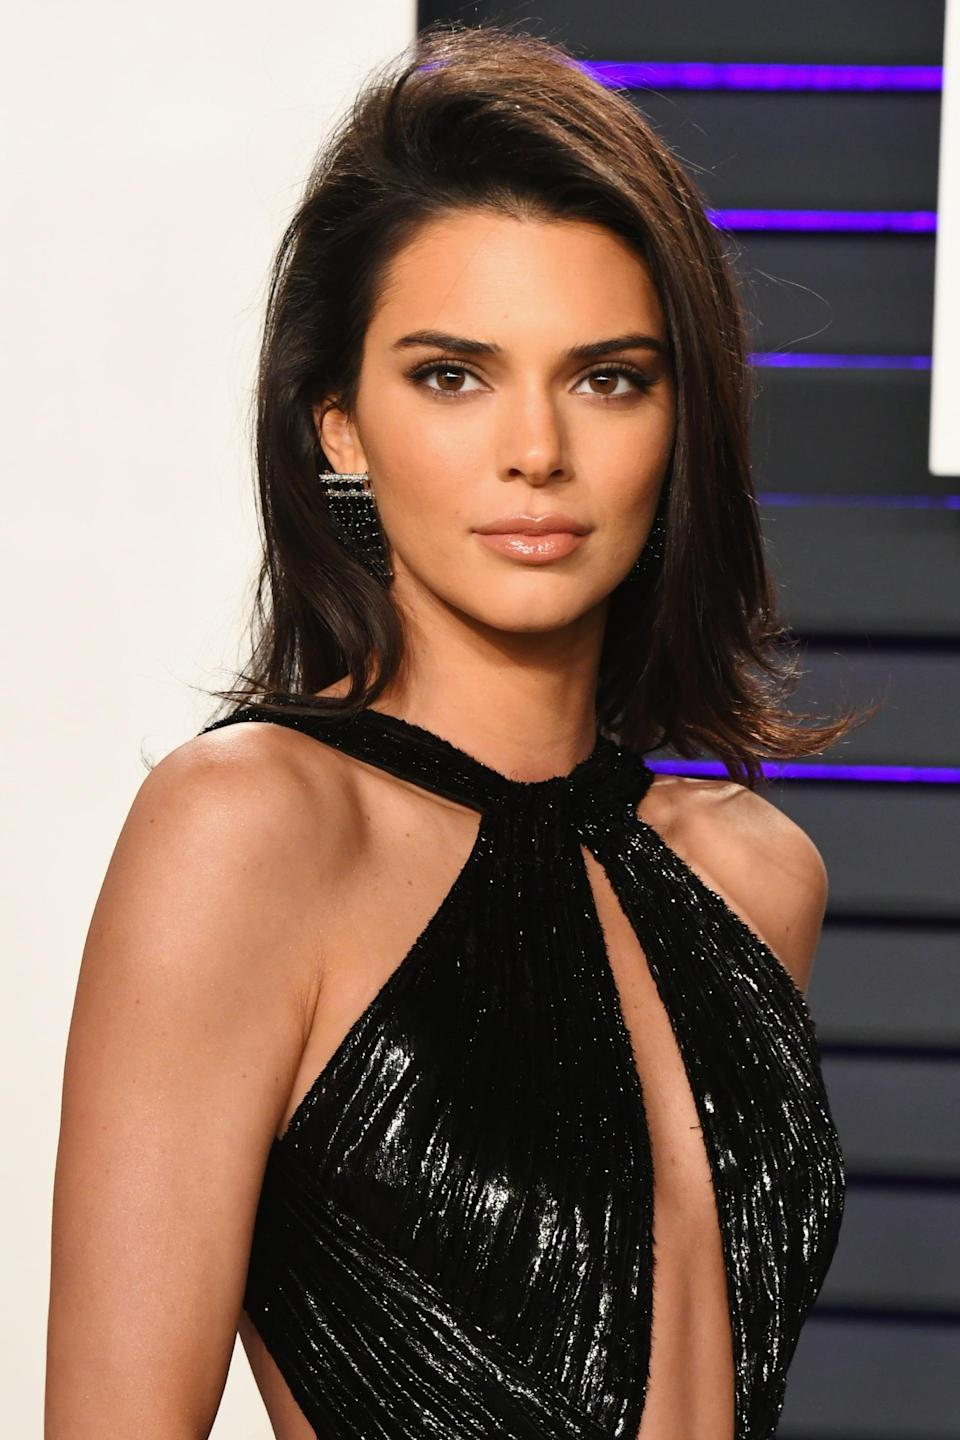 """<p>There's a reason why Kendall is one of the highest-paid models in the world: she's a busy lady. To kick off 2021, Kendall announced her partnership with <a href=""""http://www.aloyoga.com/pages/shop-the-look"""" class=""""link rapid-noclick-resp"""" rel=""""nofollow noopener"""" target=""""_blank"""" data-ylk=""""slk:Alo Yoga"""">Alo Yoga</a>, which she can add to her long list of brand partners, such as <a href=""""http://moonoralcare.com/"""" class=""""link rapid-noclick-resp"""" rel=""""nofollow noopener"""" target=""""_blank"""" data-ylk=""""slk:Moon Oral Care"""">Moon Oral Care</a>. She's also recently appeared in fashion campaigns for Versace, Givenchey, and Calvin Klein, and she landed the cover of <strong>Vogue</strong> China for its February 2021 issue. But she's not just sticking to modeling this year. You can look forward to the launch of <a href=""""http://www.drink818.com/21-age-gate"""" class=""""link rapid-noclick-resp"""" rel=""""nofollow noopener"""" target=""""_blank"""" data-ylk=""""slk:818, Kendall's new tequila brand"""">818, Kendall's new tequila brand</a>, in 2021 as well. Oh, and let's not forget her <a href=""""http://kendall-kylie.com/"""" class=""""link rapid-noclick-resp"""" rel=""""nofollow noopener"""" target=""""_blank"""" data-ylk=""""slk:Kendall + Kylie"""">Kendall + Kylie</a> clothing line. </p>"""